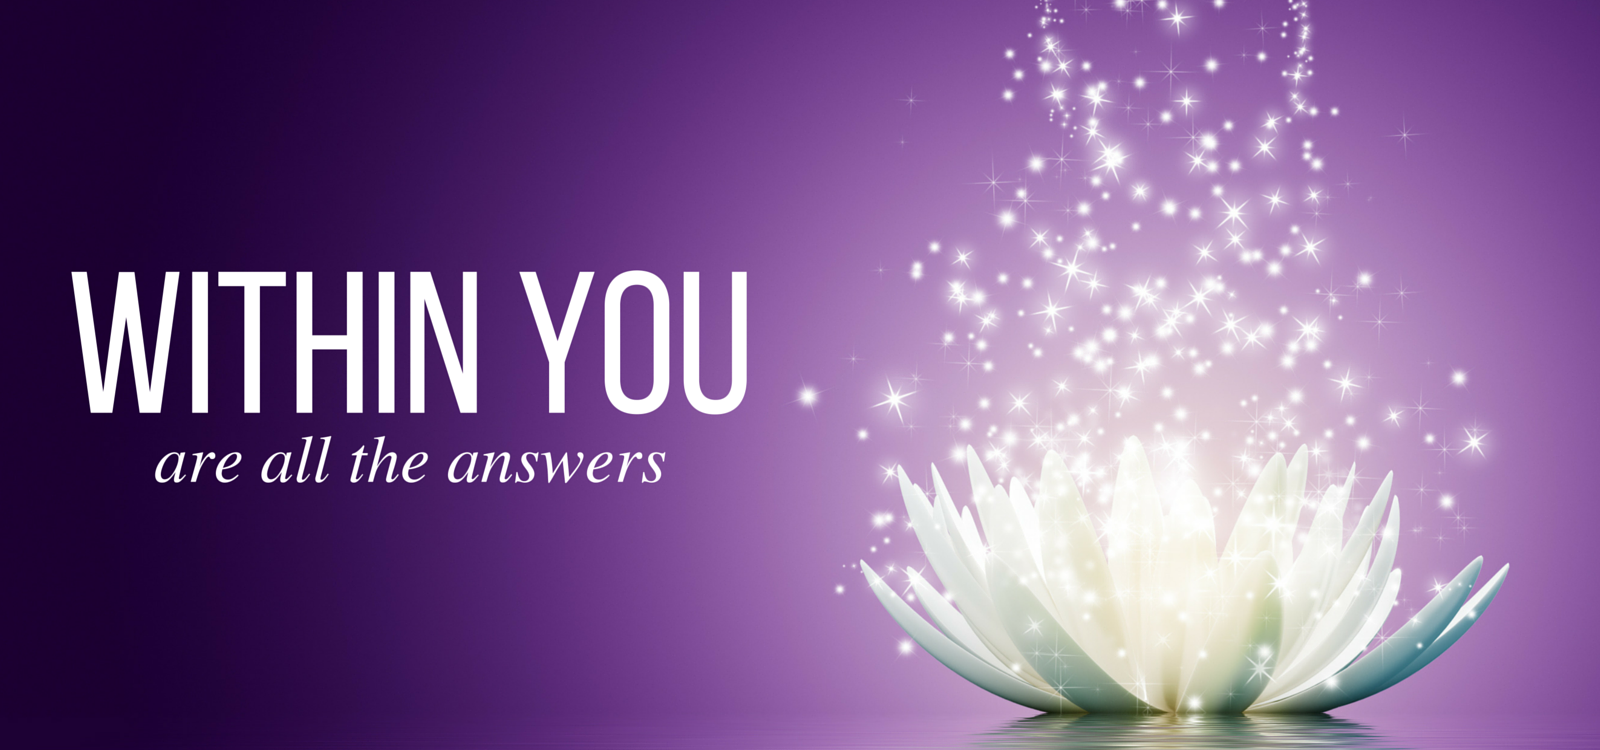 Within you are all the answers